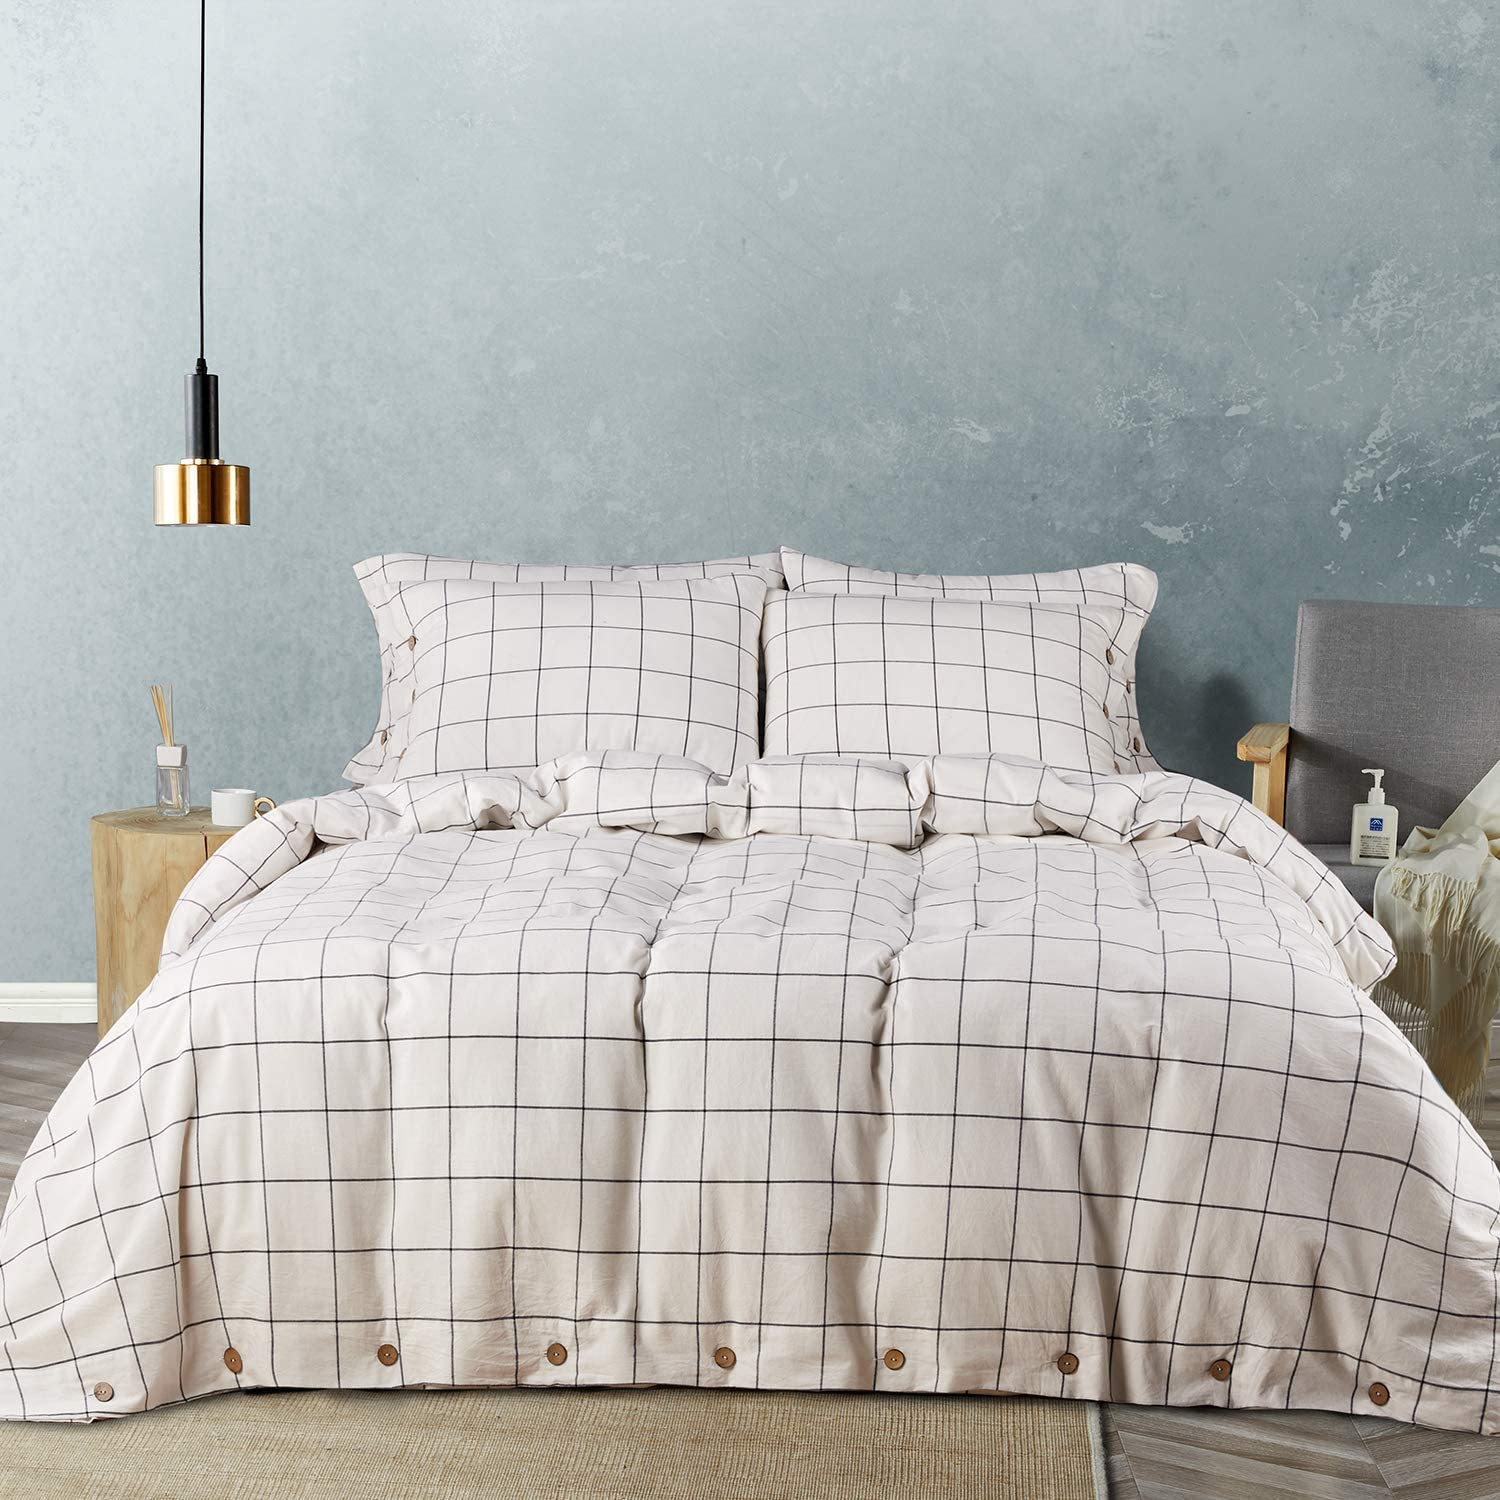 JELLYMONI White Large Grid 100% Washed San Francisco Mall Cotton 3 Duvet Cover Discount mail order Set